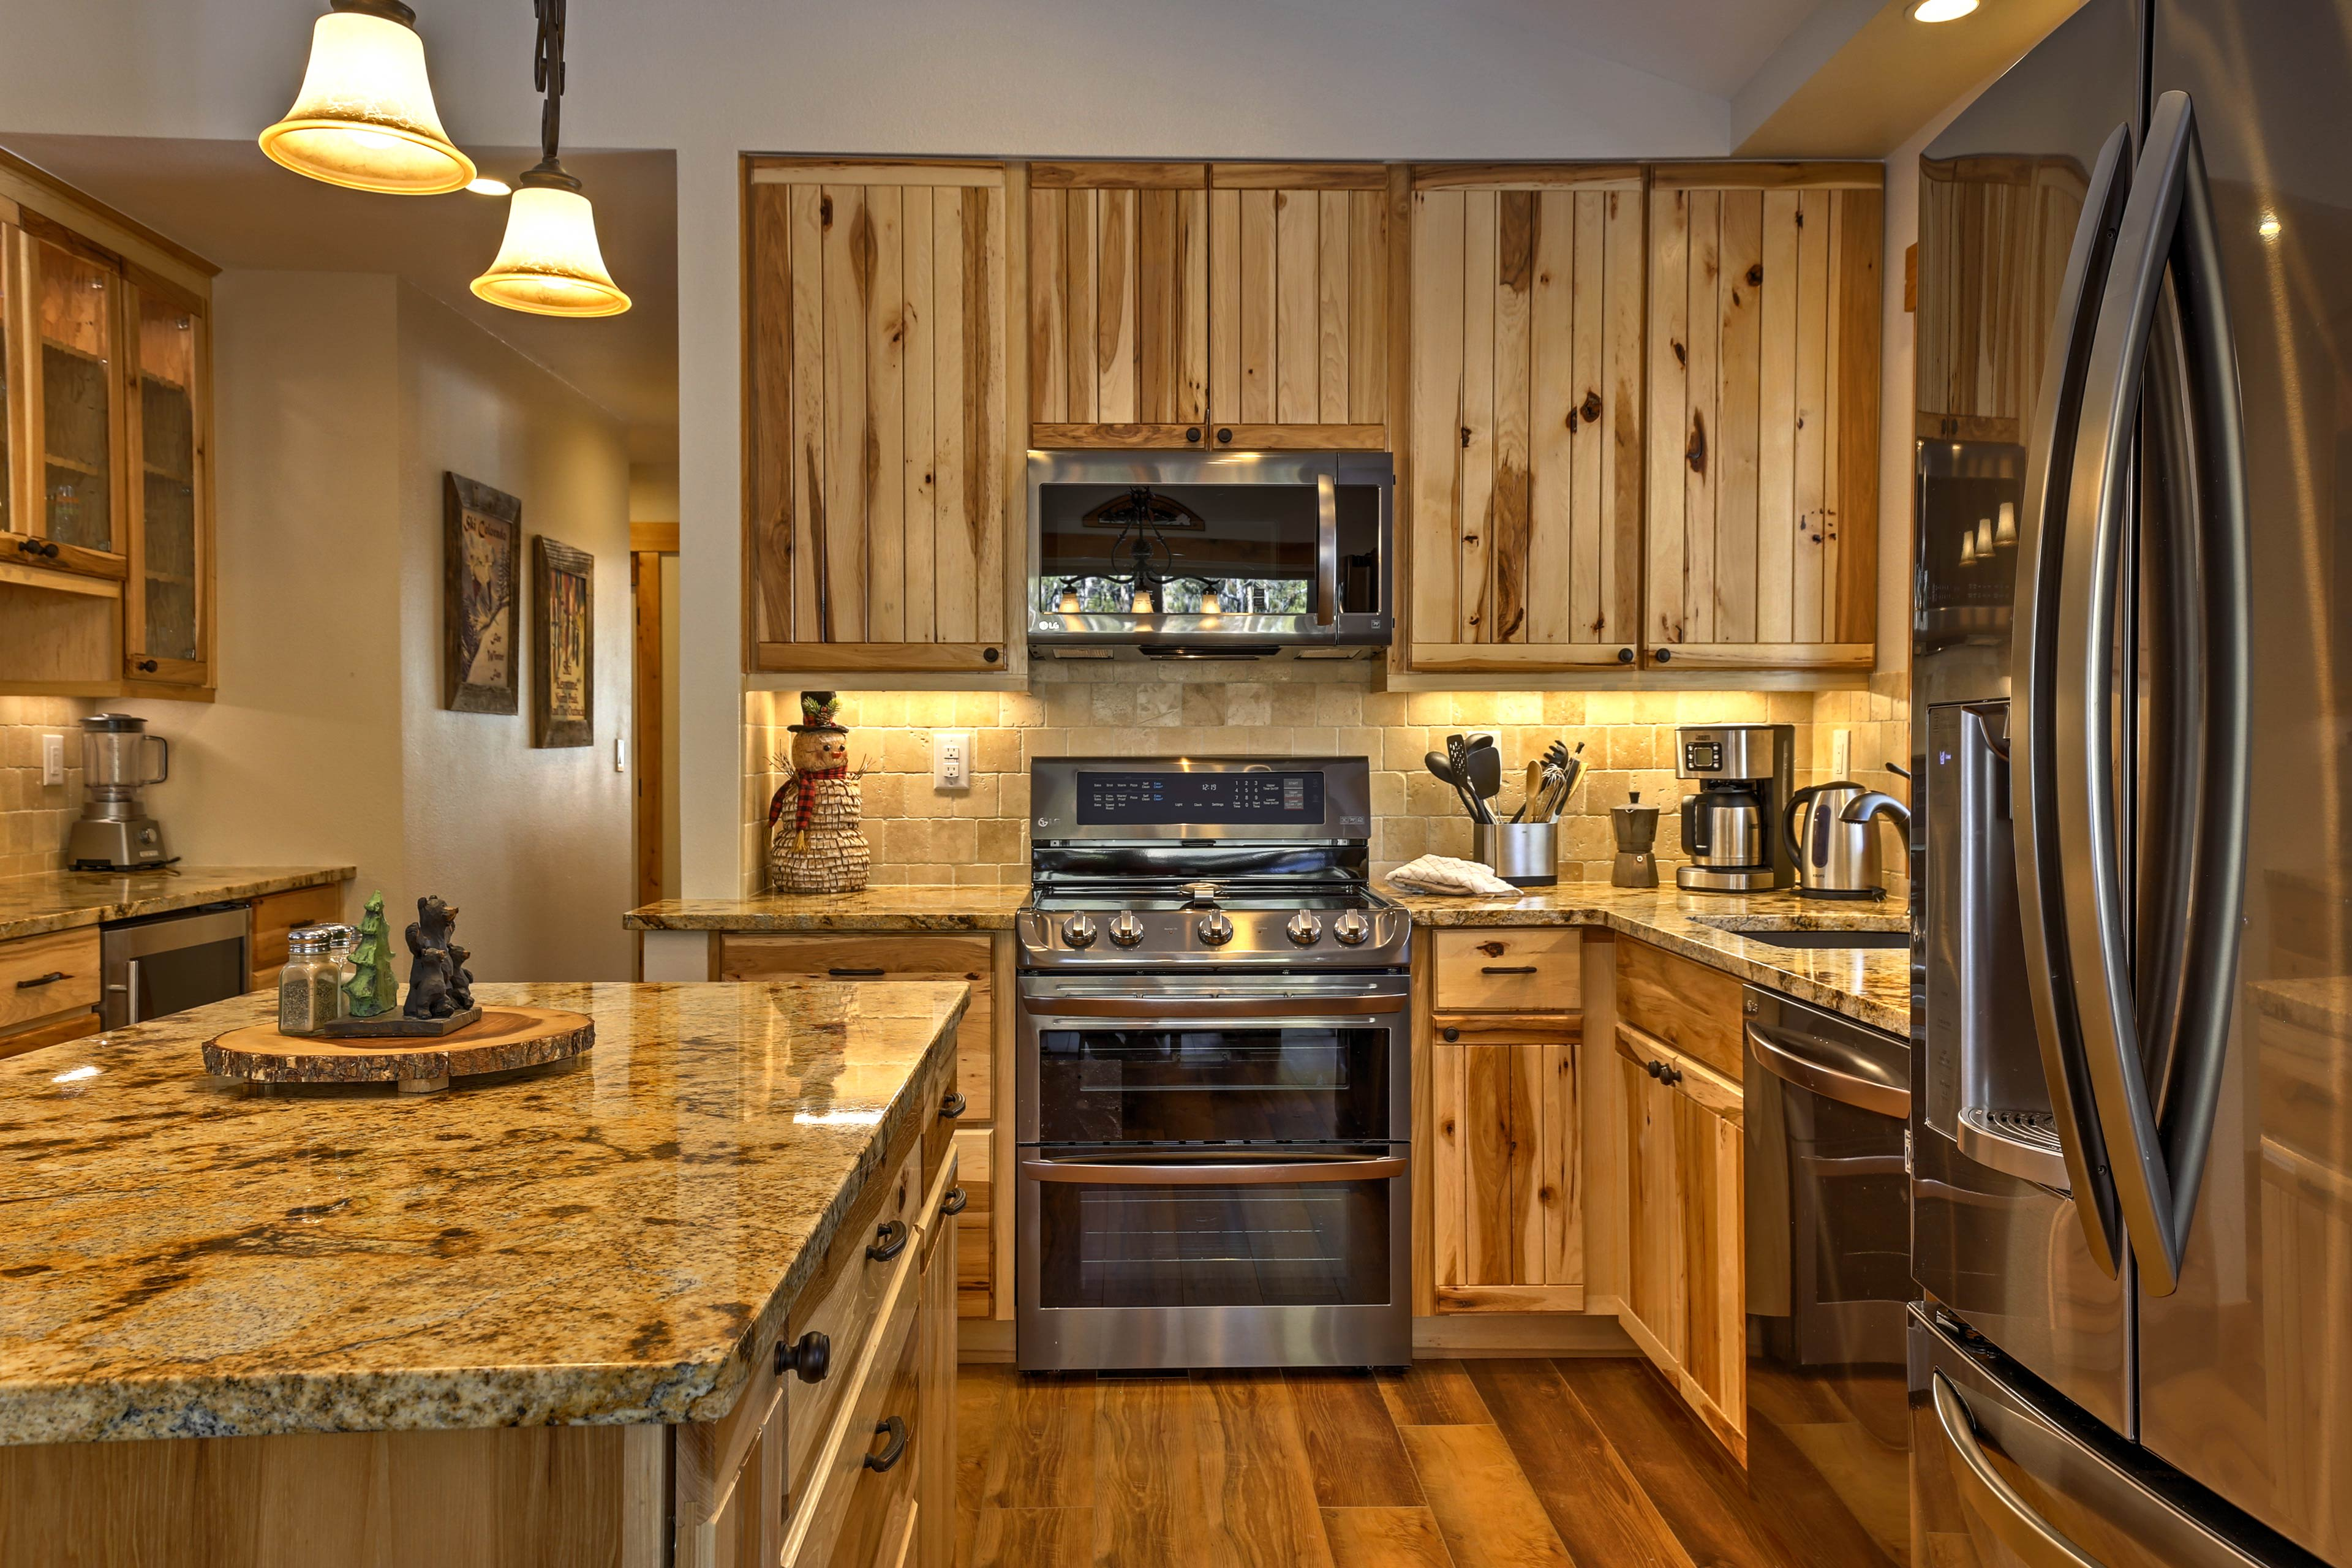 Fully equipped kitchen is ready for your resident chef to whip up a tasty meal.